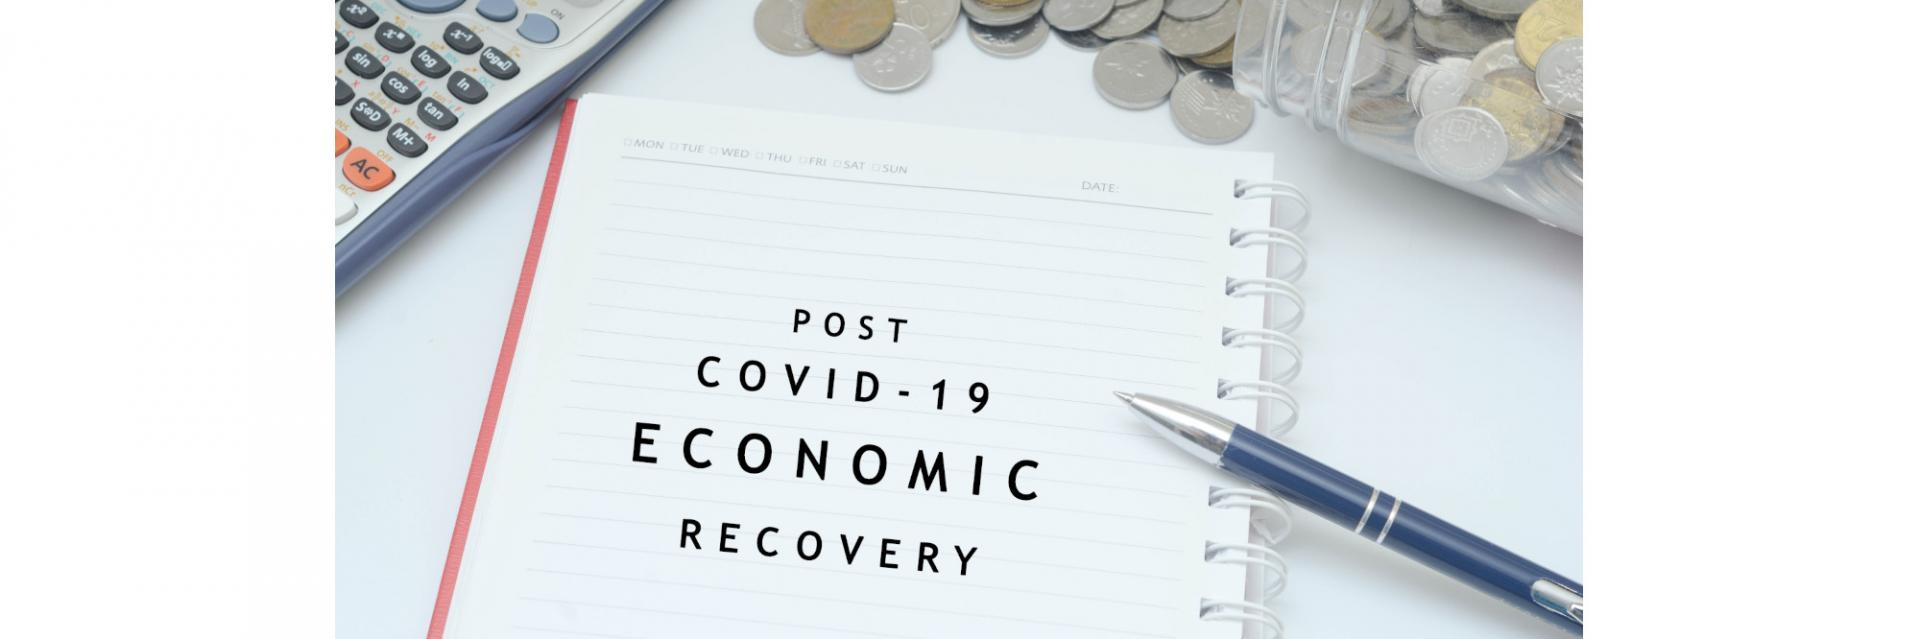 ECA partners ODI and ACET to research into how AfCFTA will promote post COVID-19 economic recovery